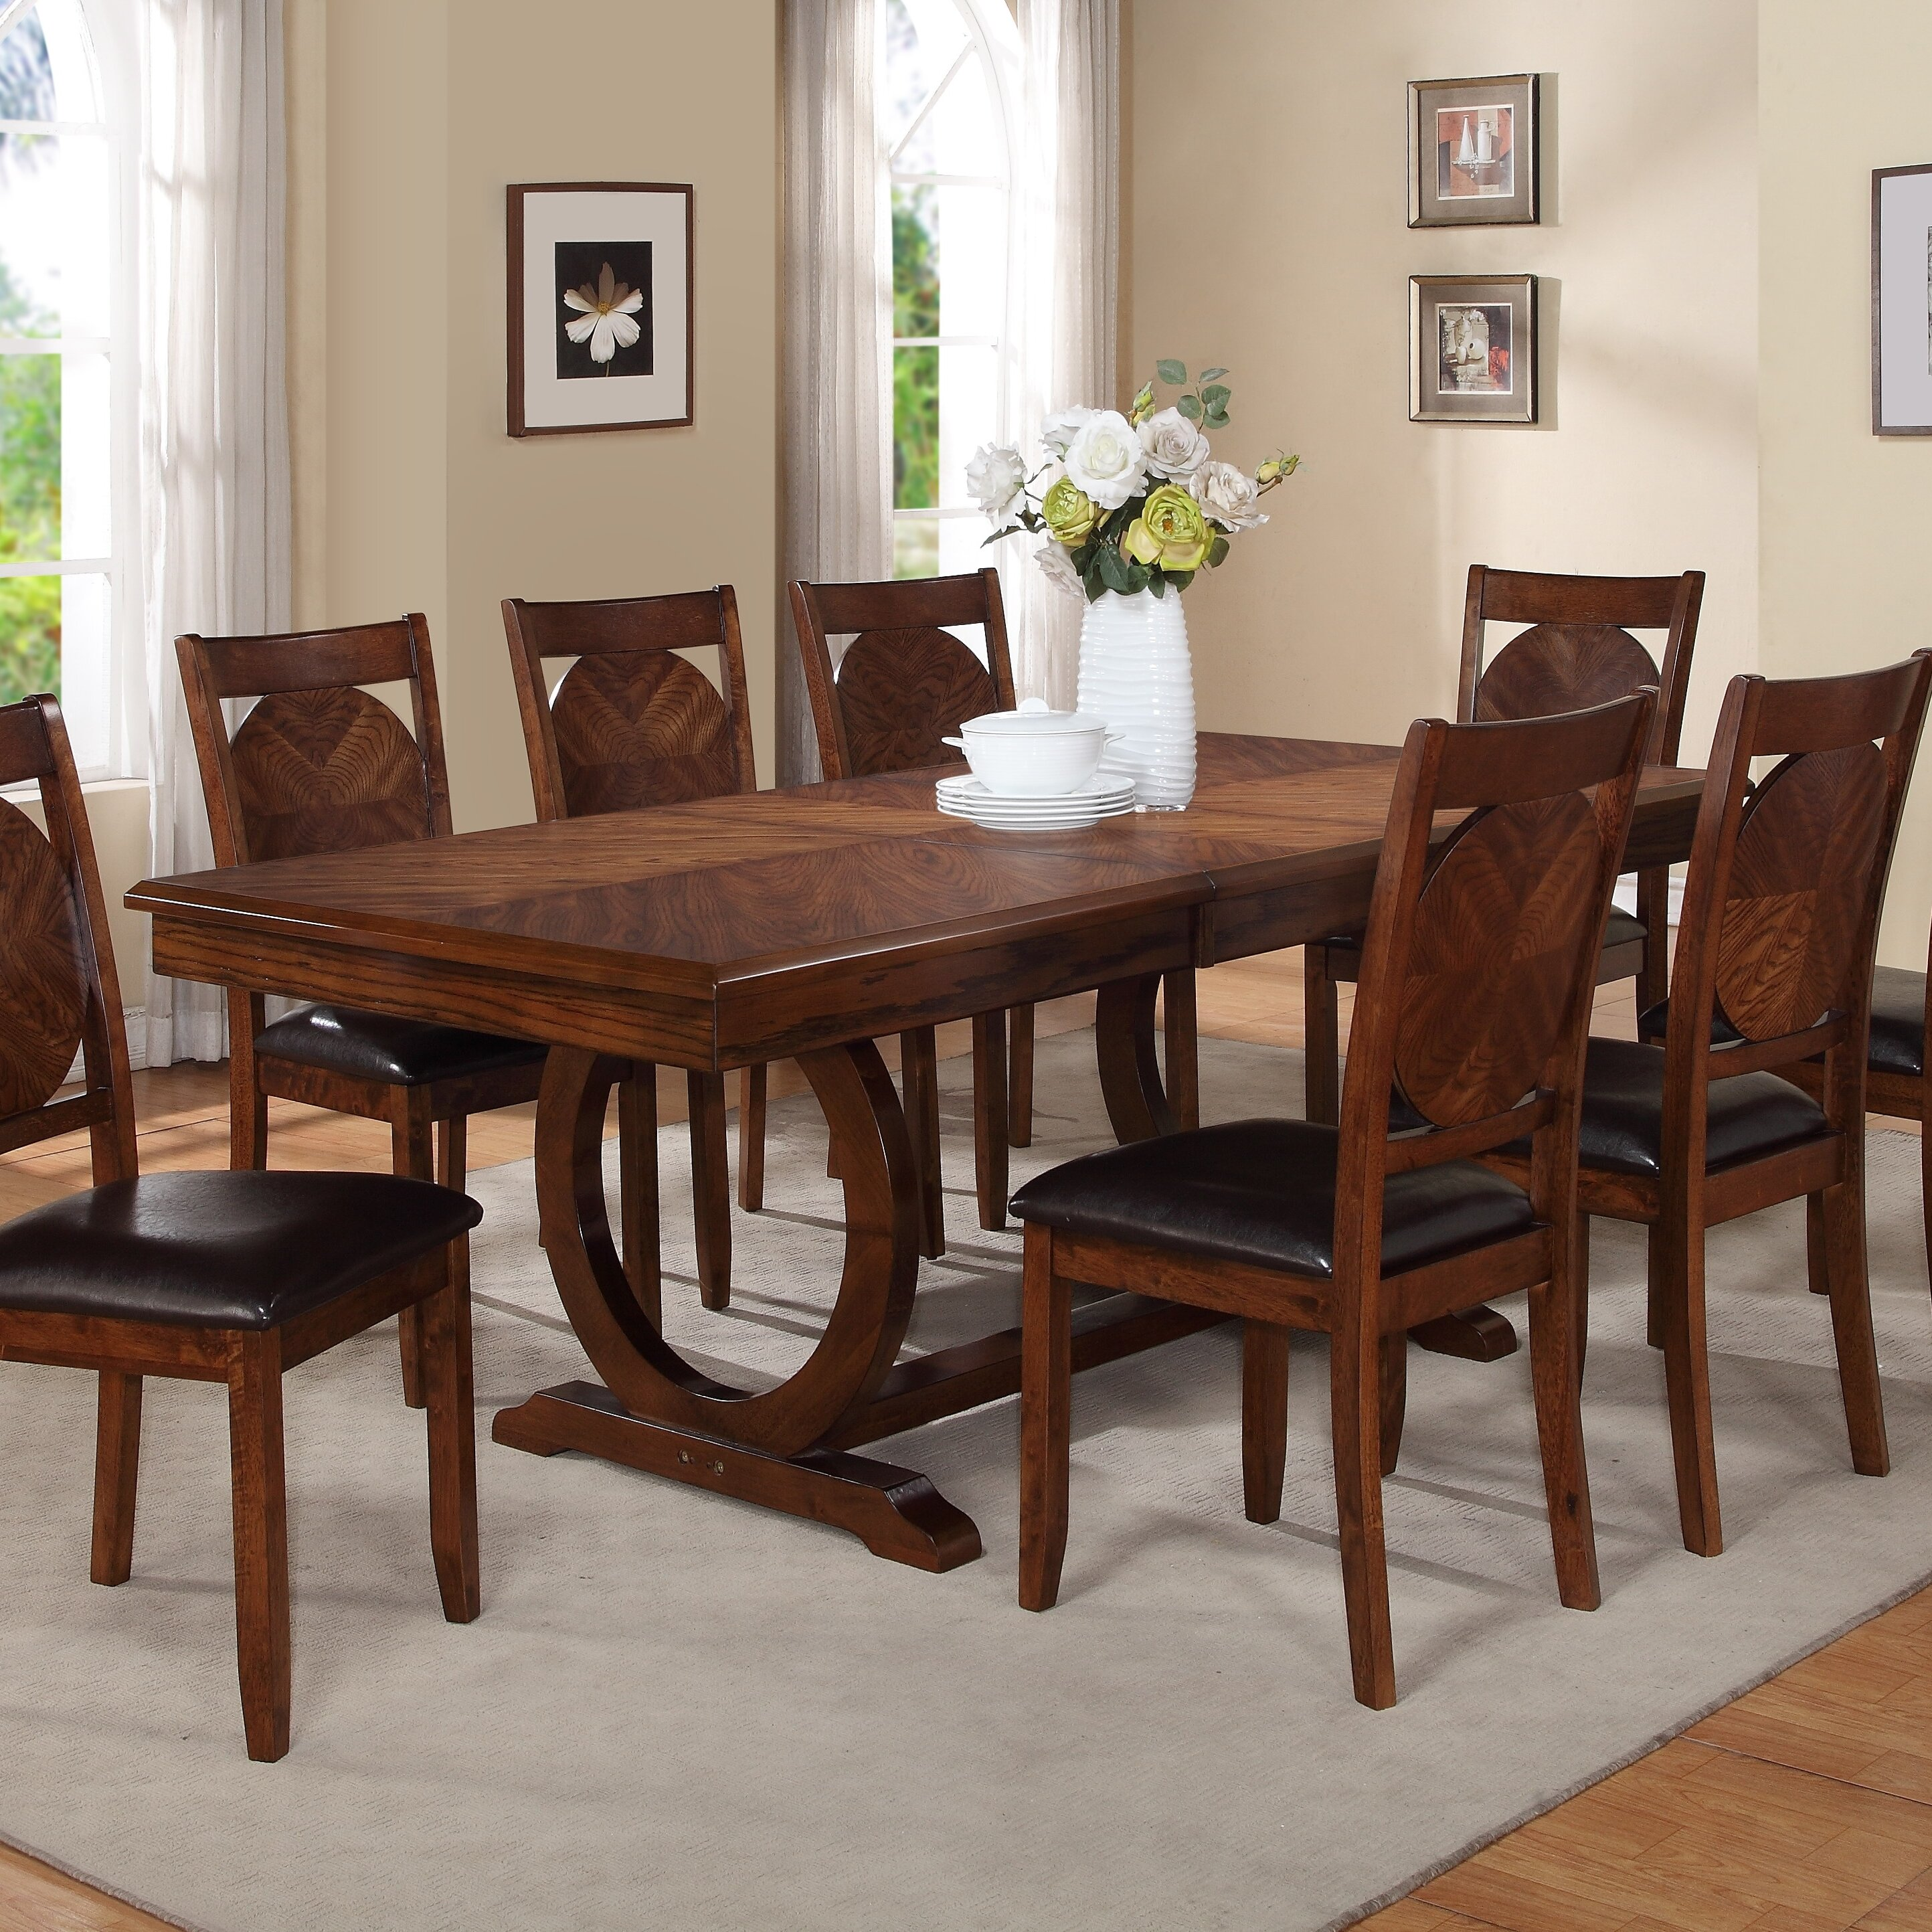 World menagerie kapoor extendable dining table reviews wayfair - Dining room table prices ...